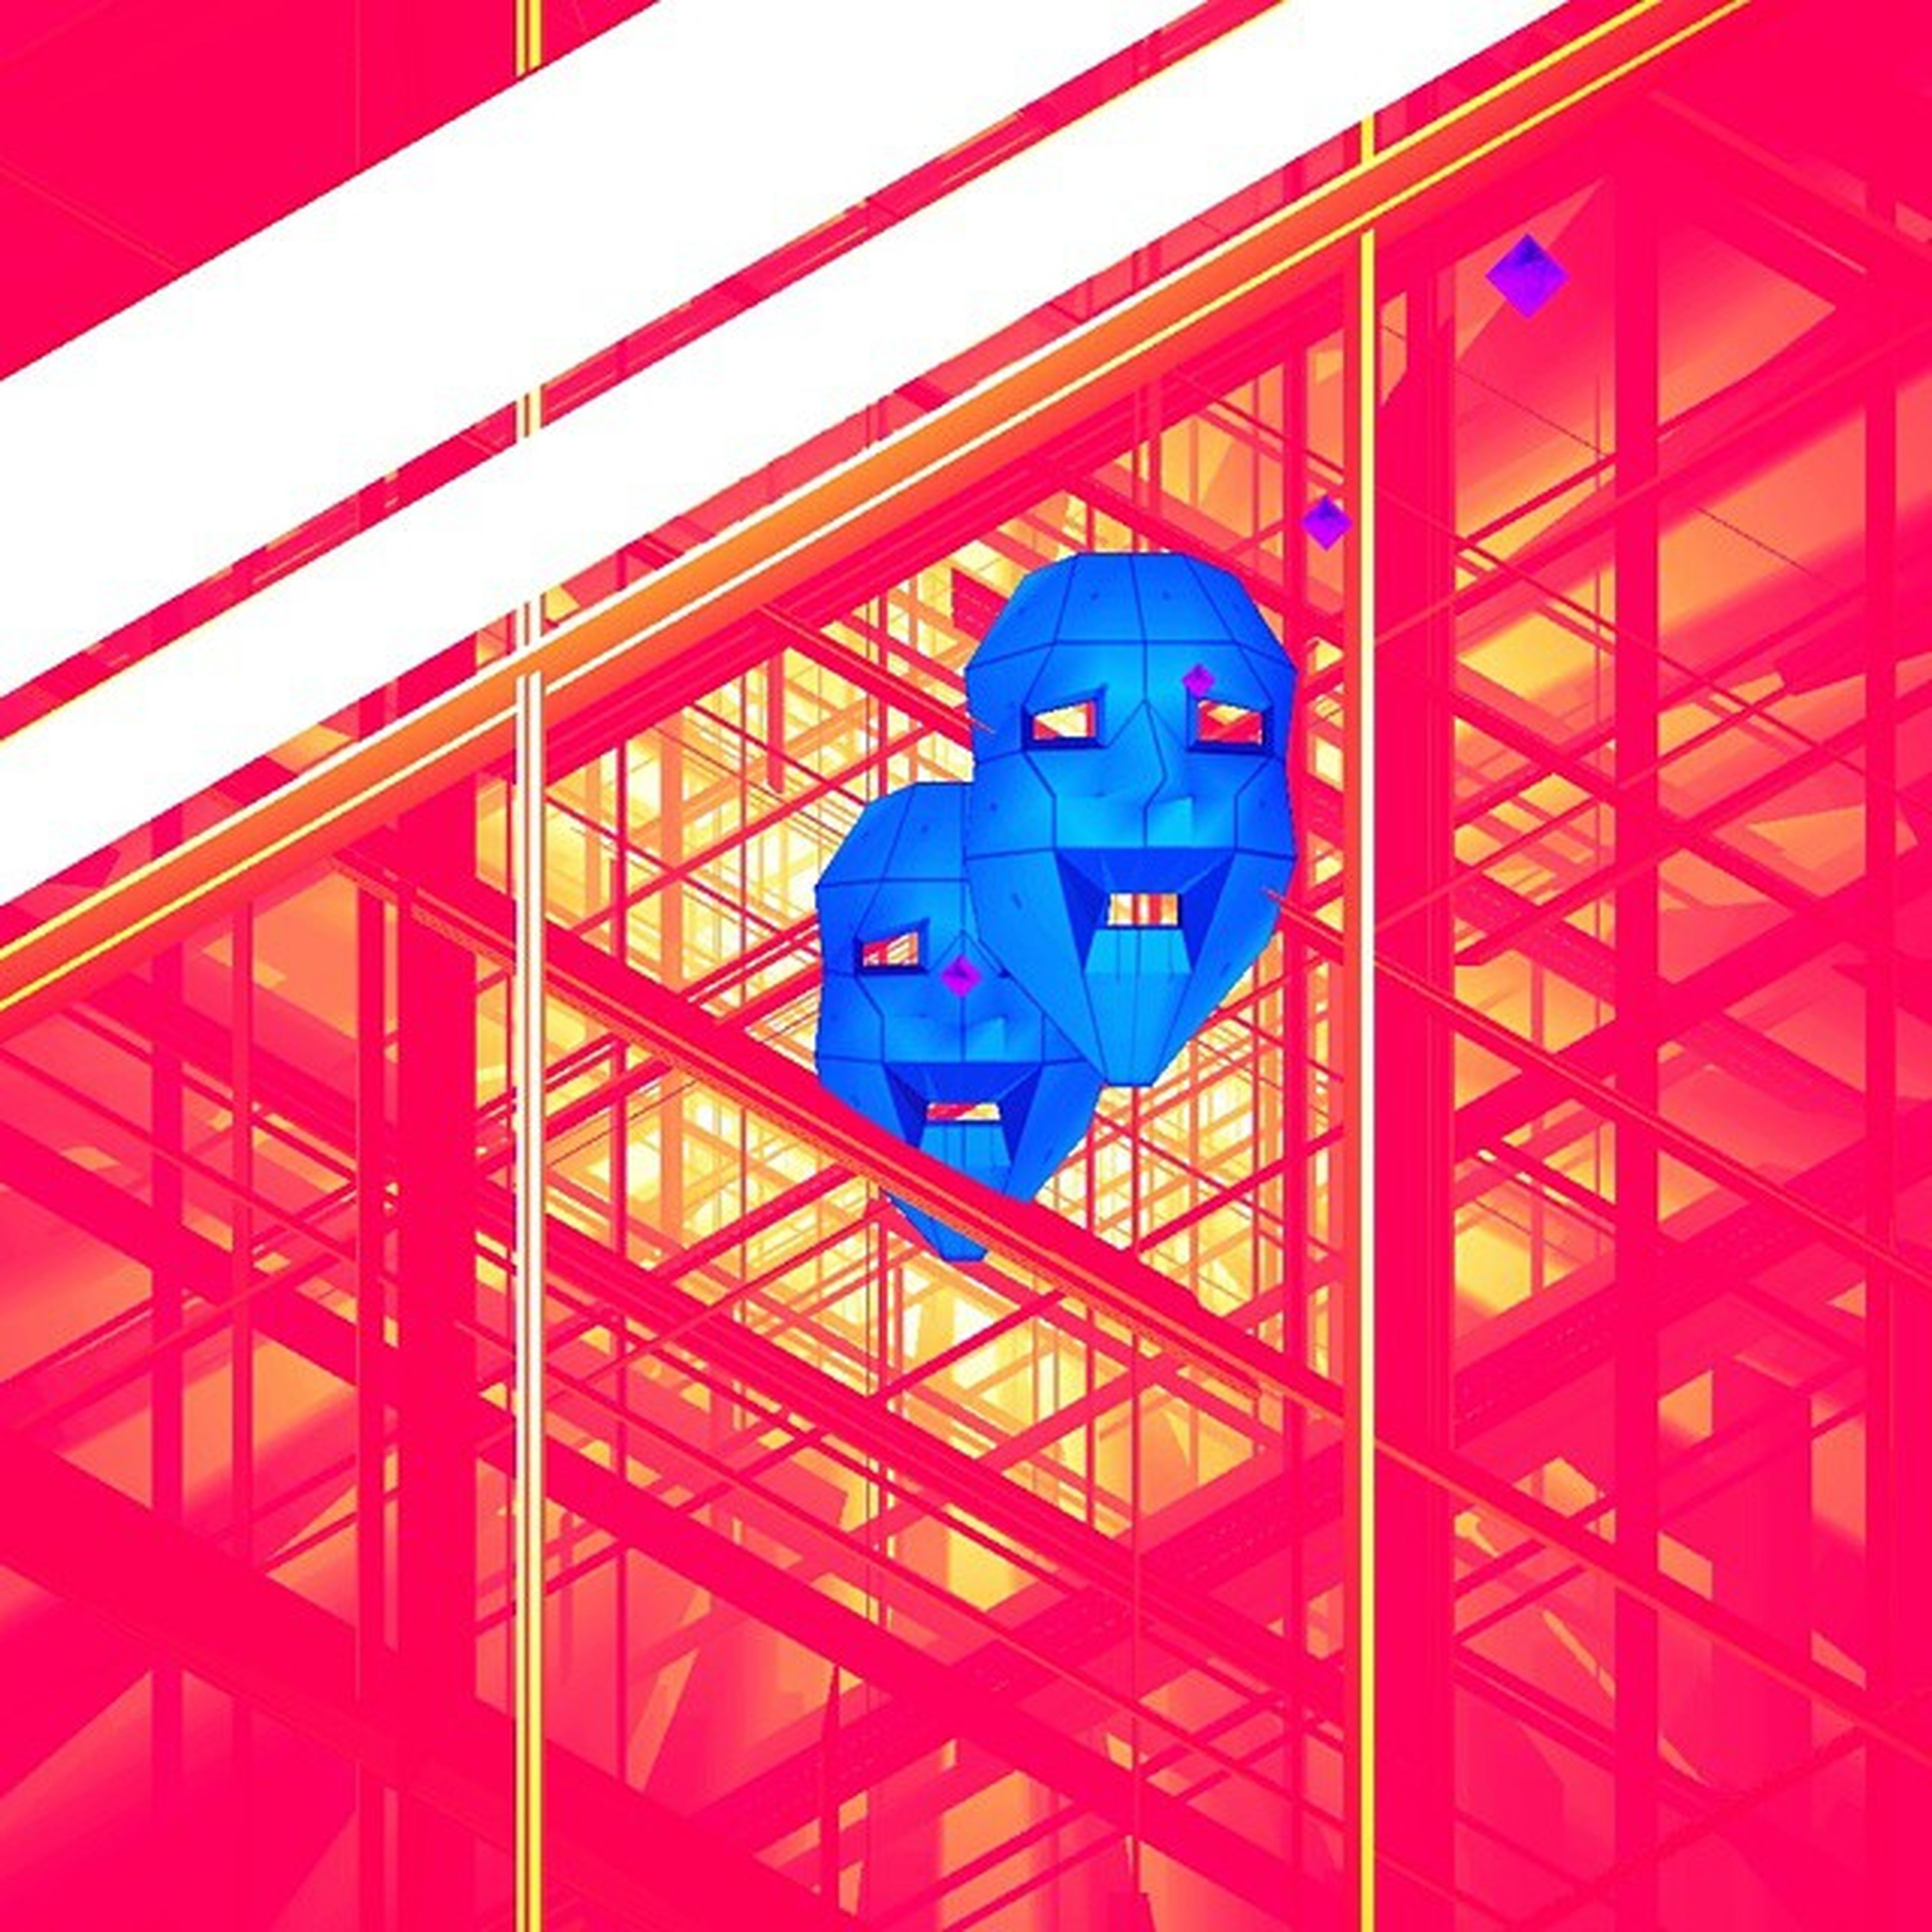 red, built structure, architecture, metal, metallic, low angle view, pattern, no people, building exterior, blue, backgrounds, full frame, geometric shape, design, indoors, day, shape, close-up, connection